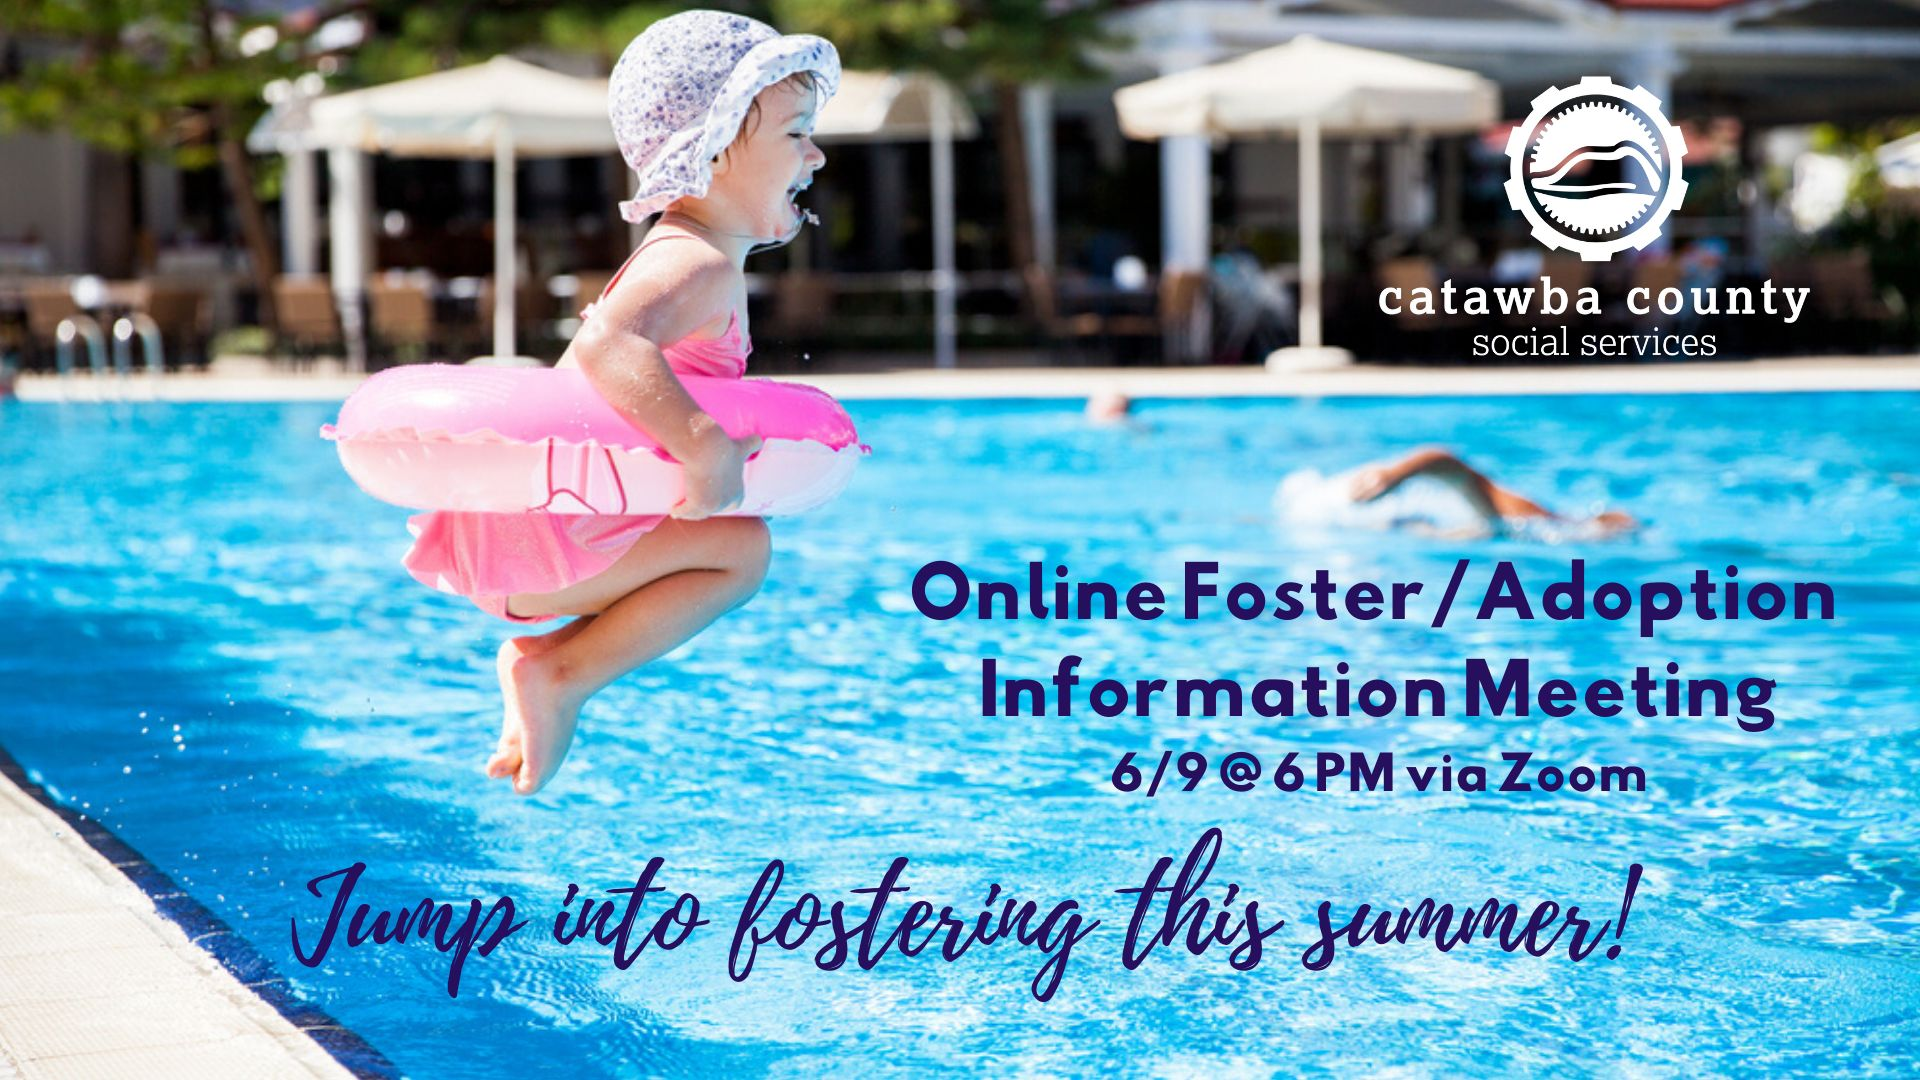 Online Foster/Adoption Information Meeting June 9